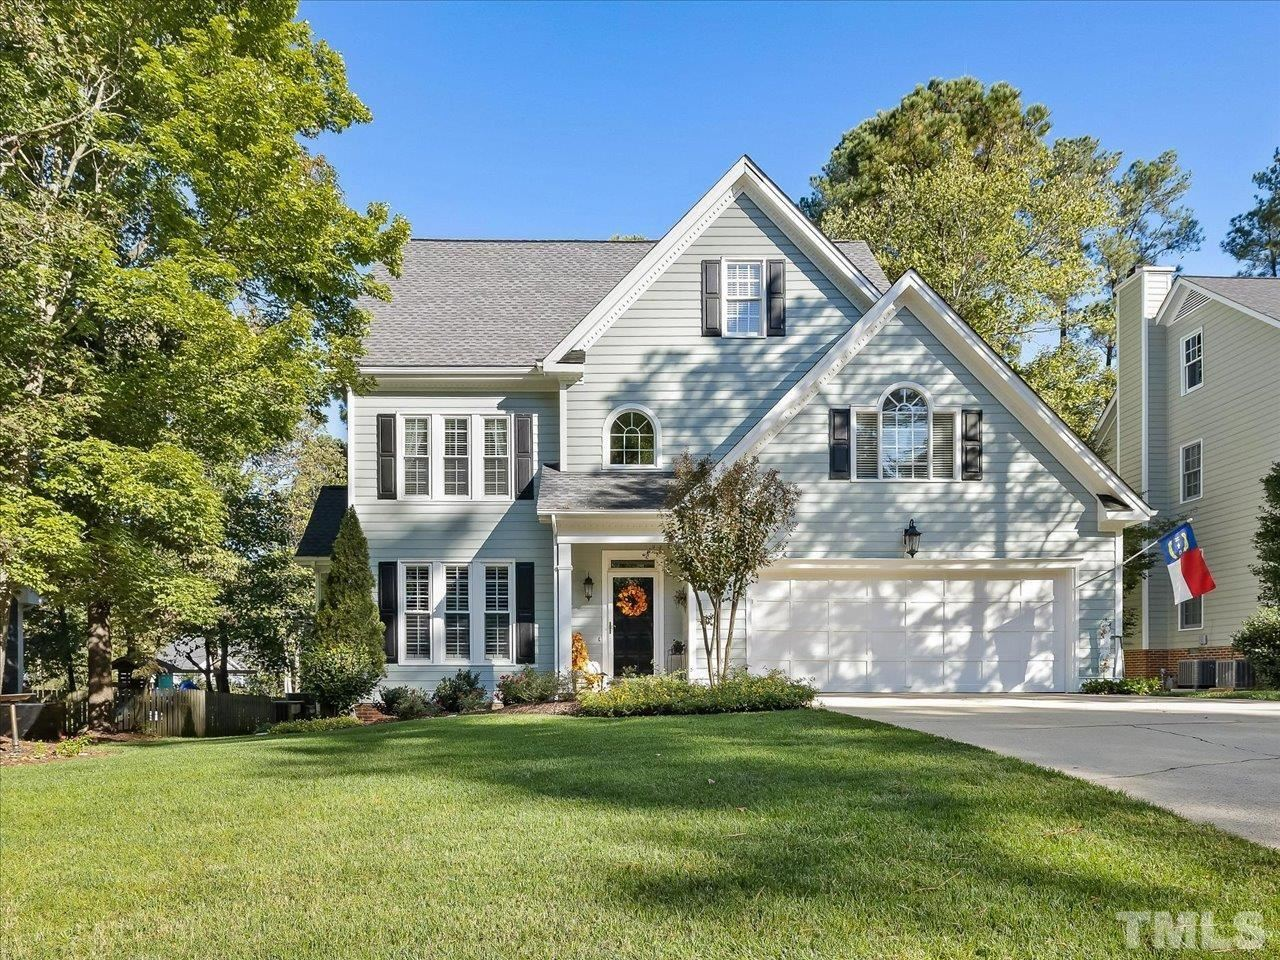 Photo of 110 Bell Vista Drive, Cary, NC 27513 (MLS # 2414547)